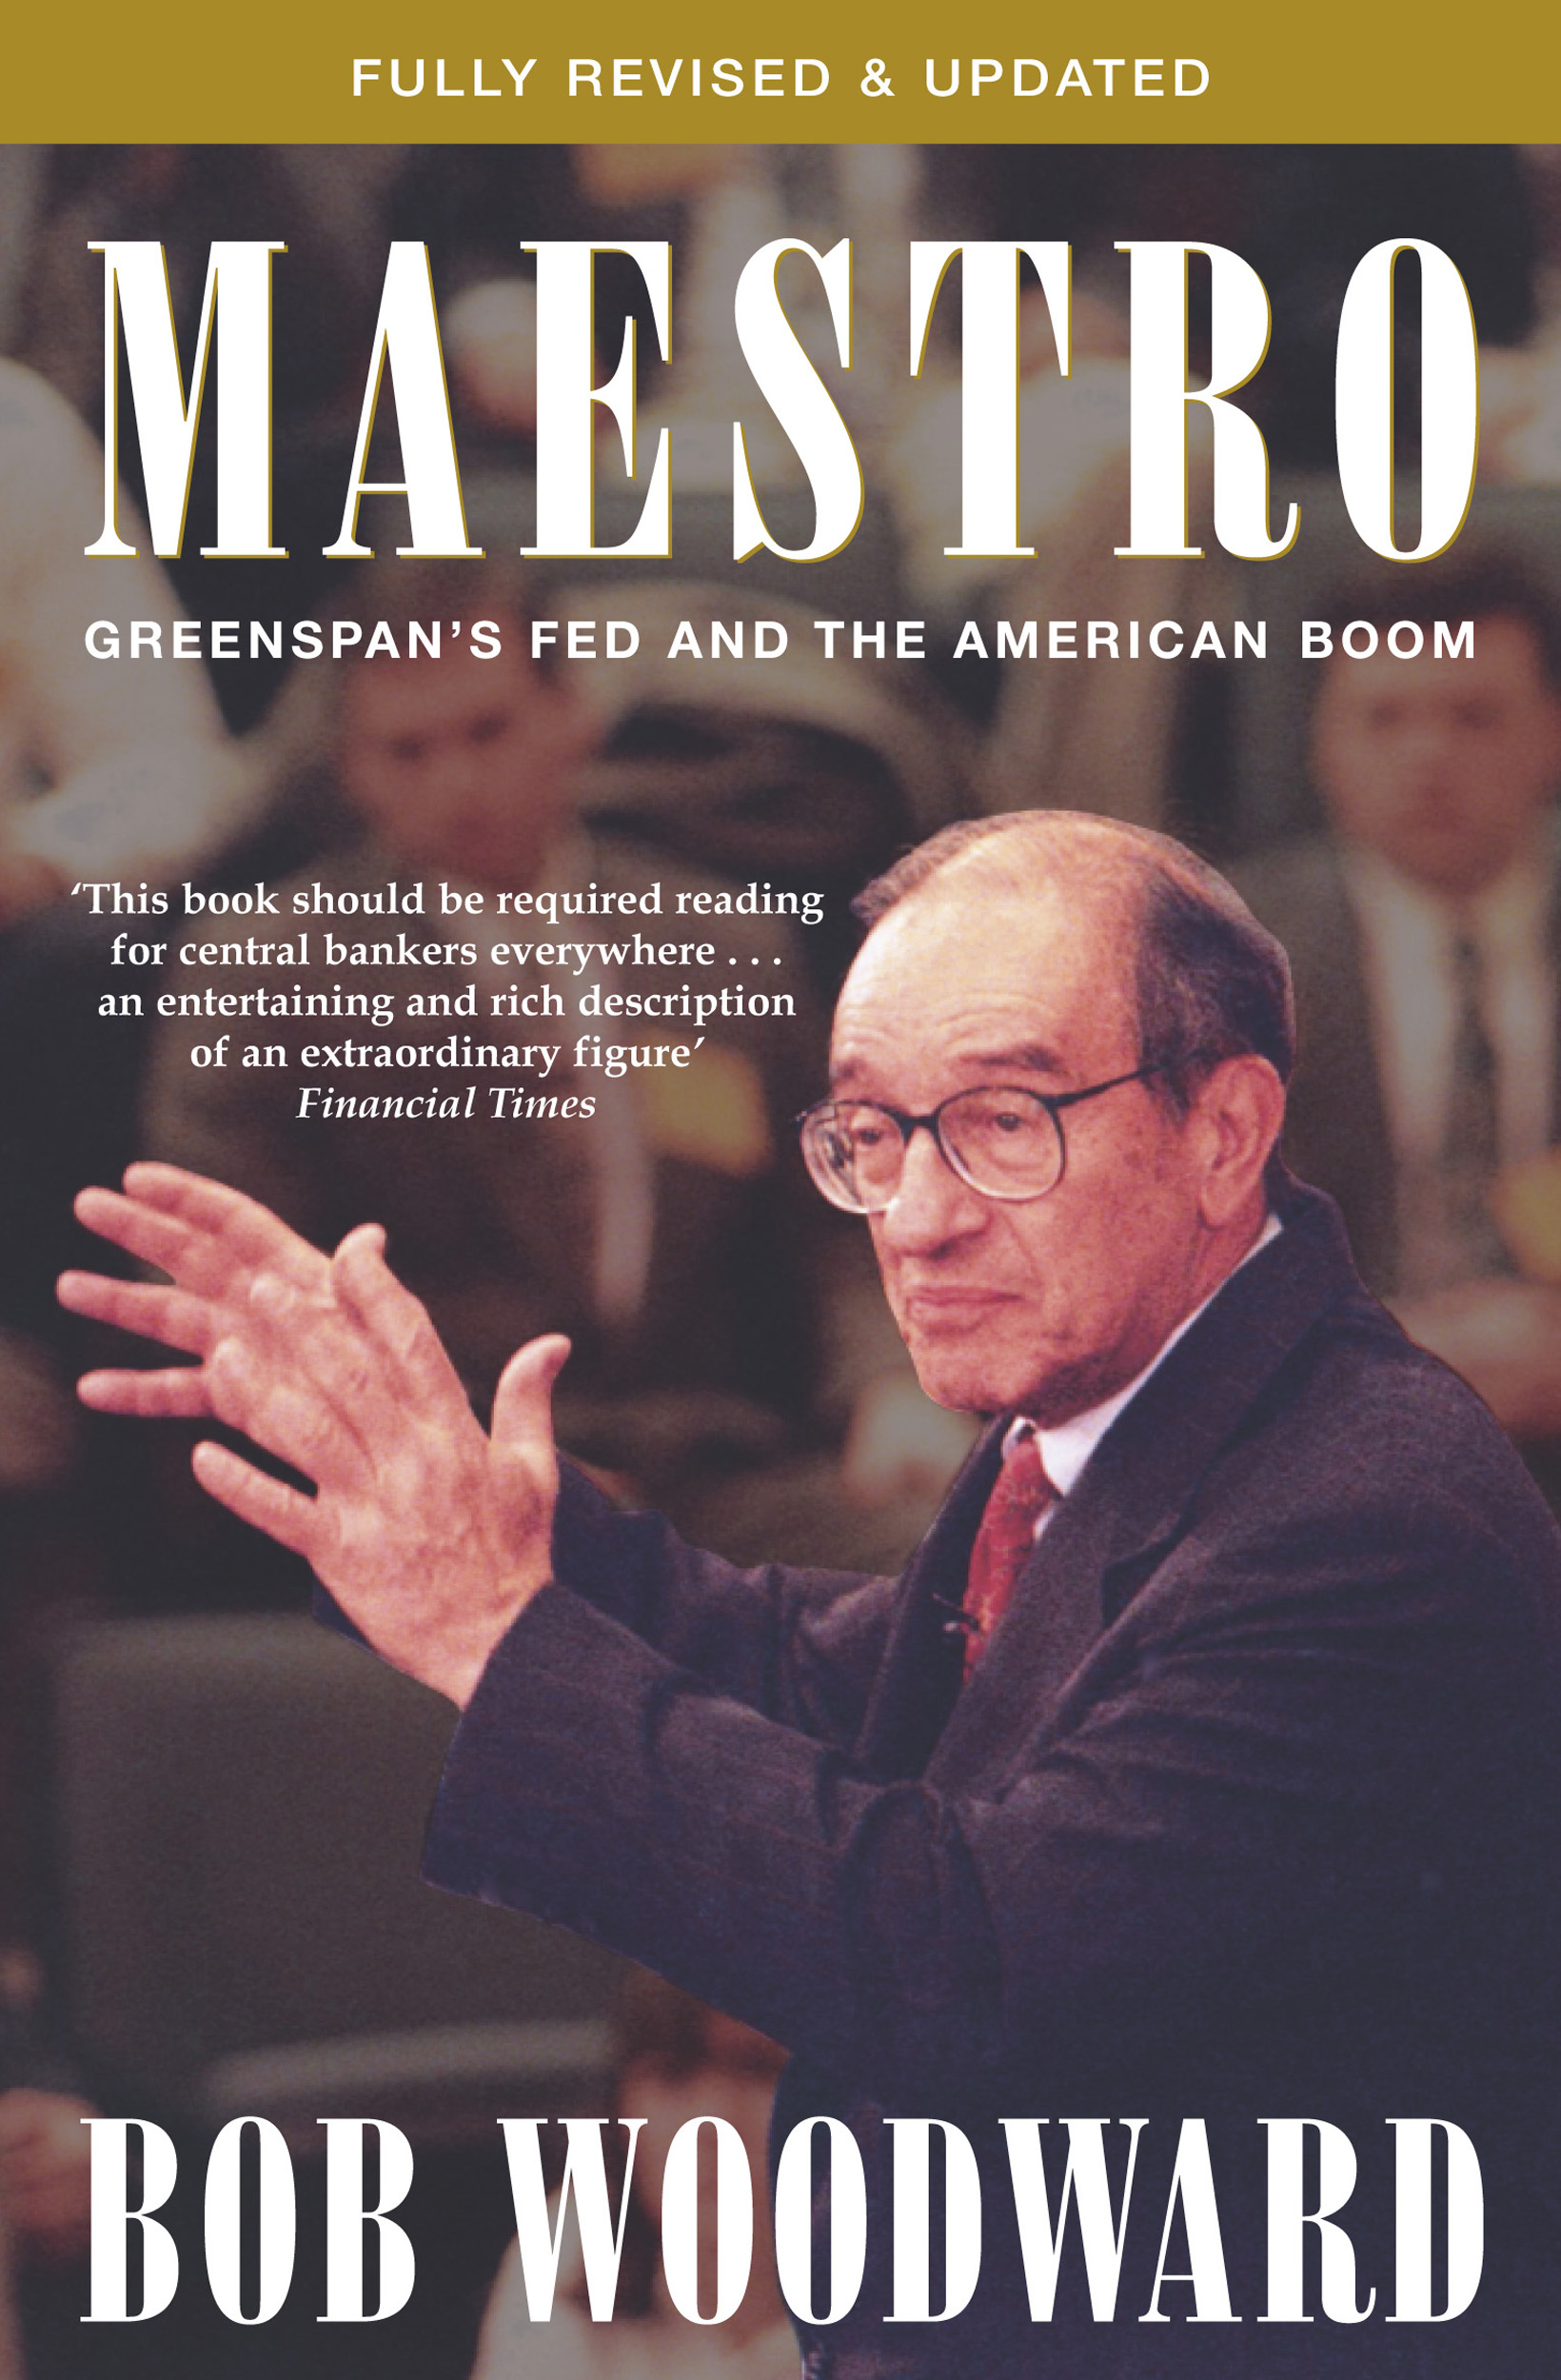 a book review of bob woodwards book maestro Bob woodward set out to write about george w bush's first year as president, covering his tax cuts and domestic agenda, but when september 11 th happened it changed the focus of his book.